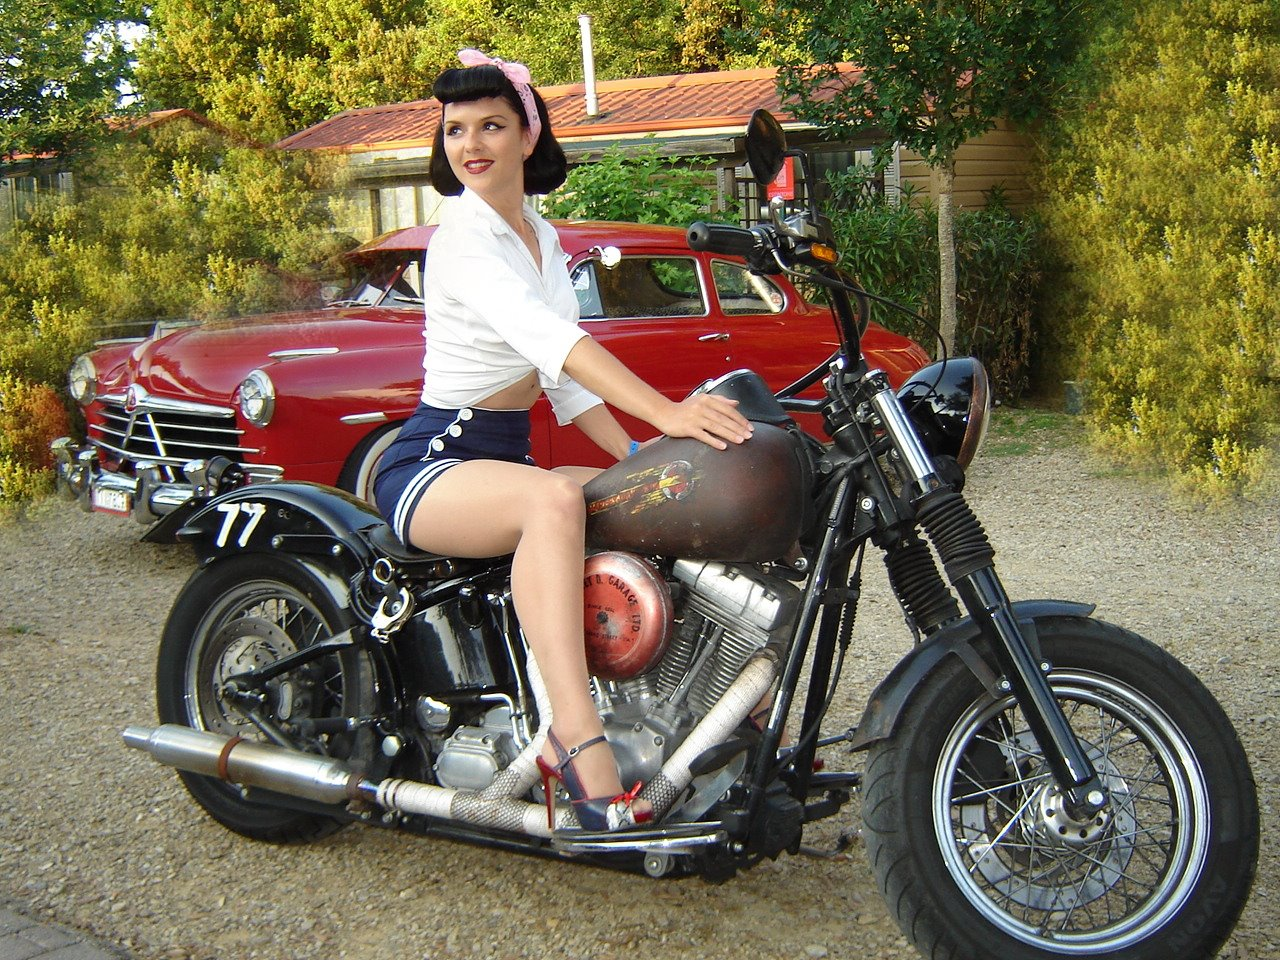 sexy-girls-on-motorcycles-14